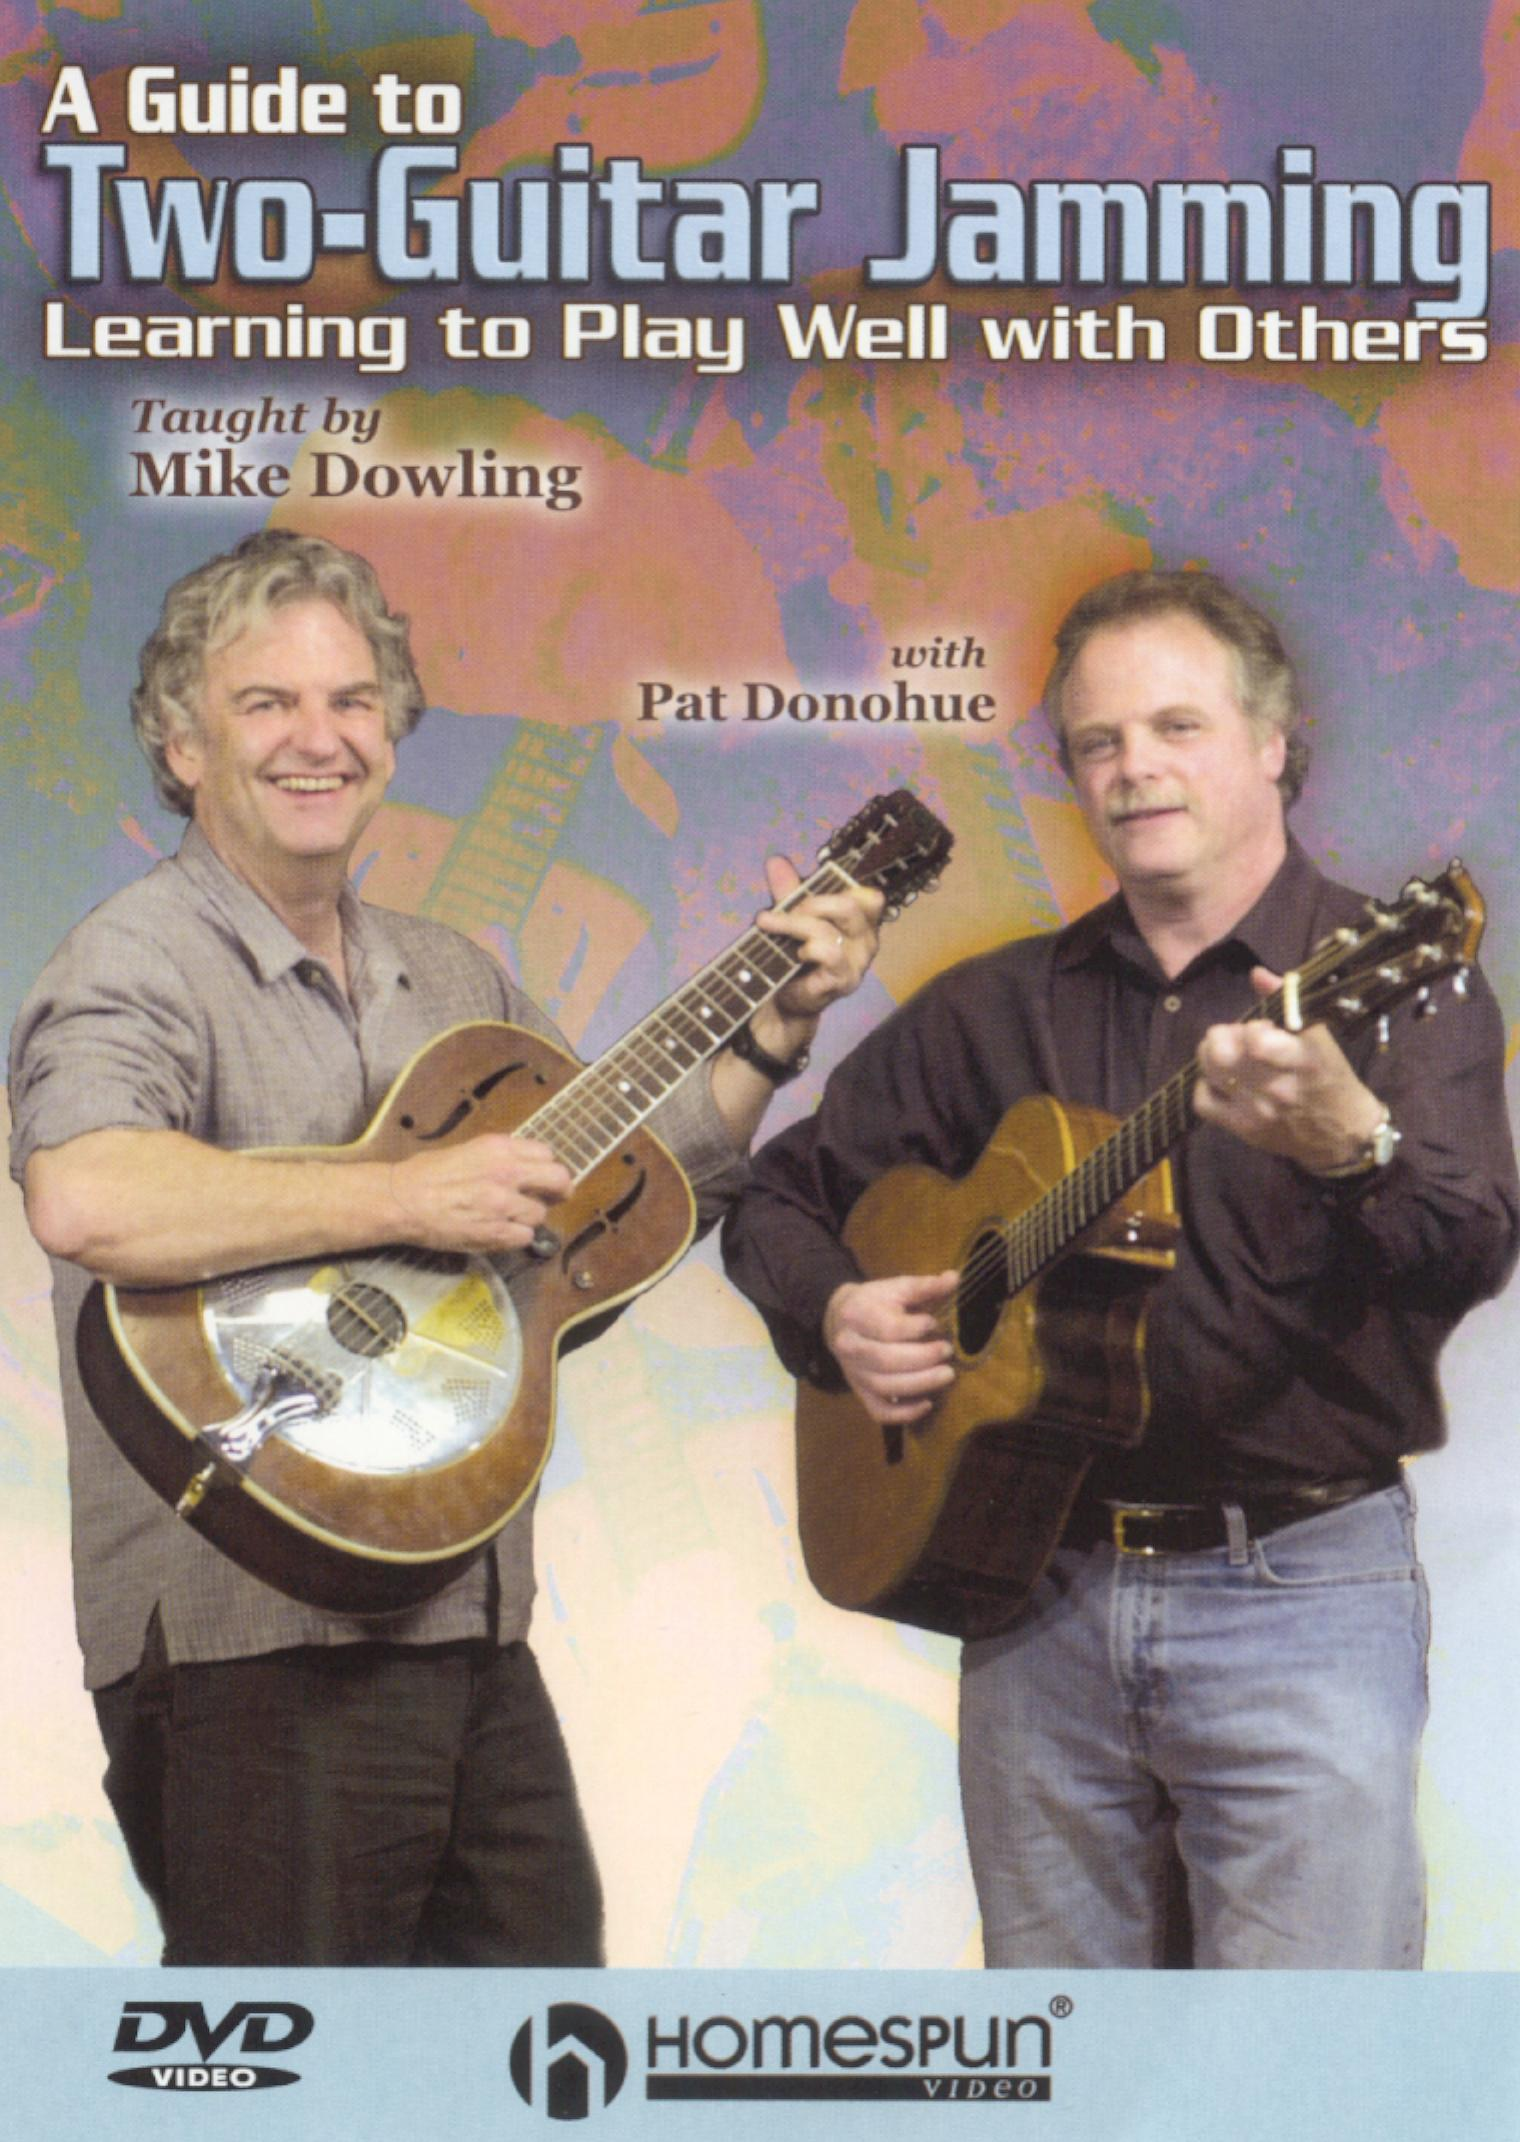 Mike Dowling and Pat Donohue: A Guide to Two Guitar Jamming